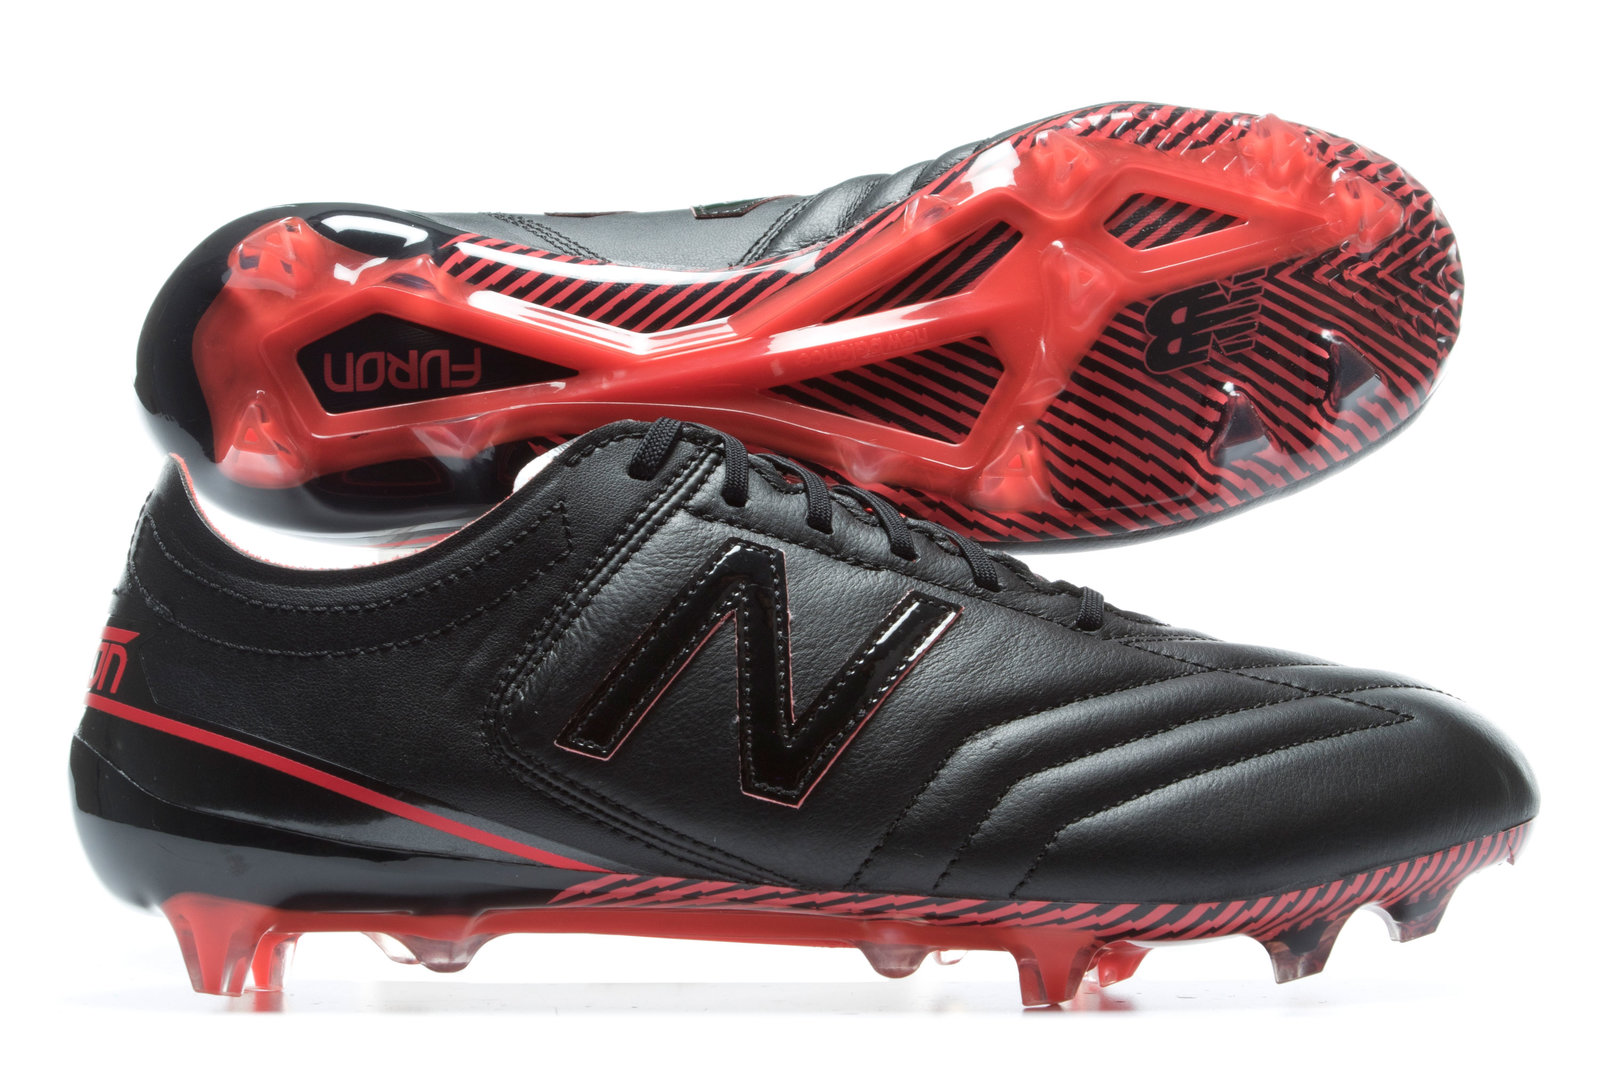 b5bd62d878910 New Balance Mens Furon K-Lite Leather FG Football Boots Shoes Footwear  Sports